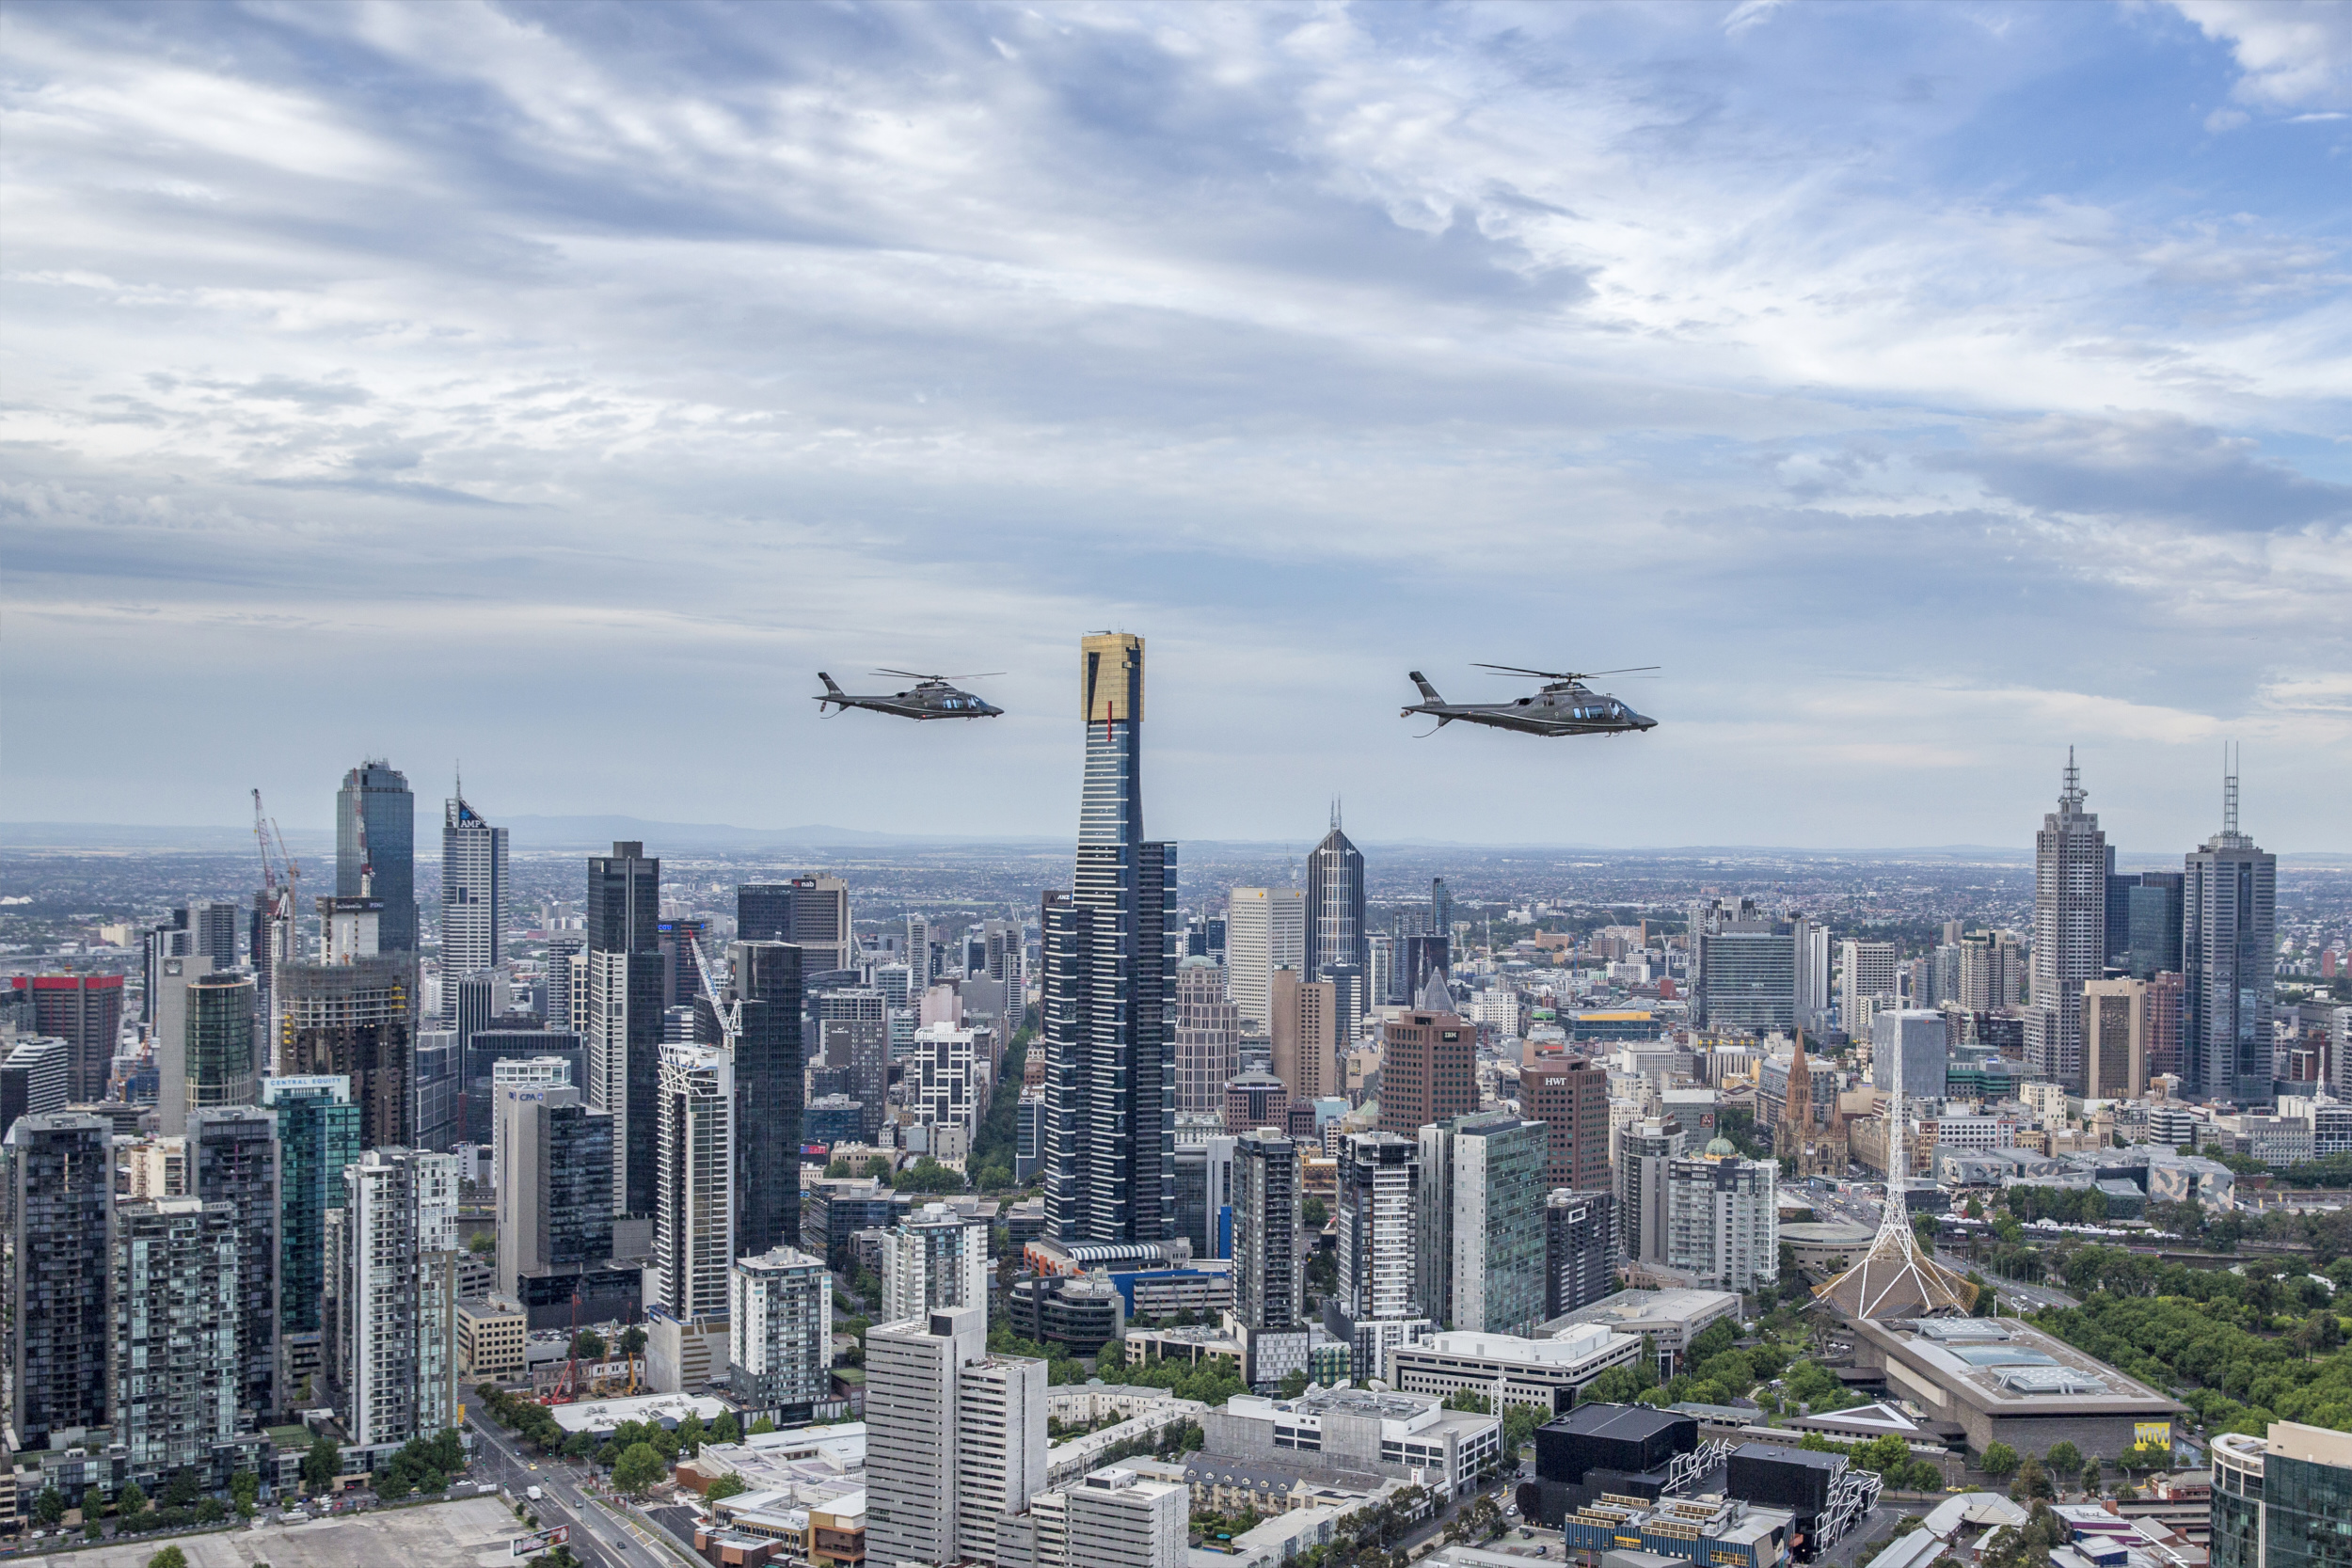 melbourne helicopter flights with Heli Express Flight Melbourne Cbd To Melbourne Airport on Hotel Map in addition Restaurant in addition 12 Apostles together with Wildlife Viewing together with Top 5 Snow Resorts In Australia.